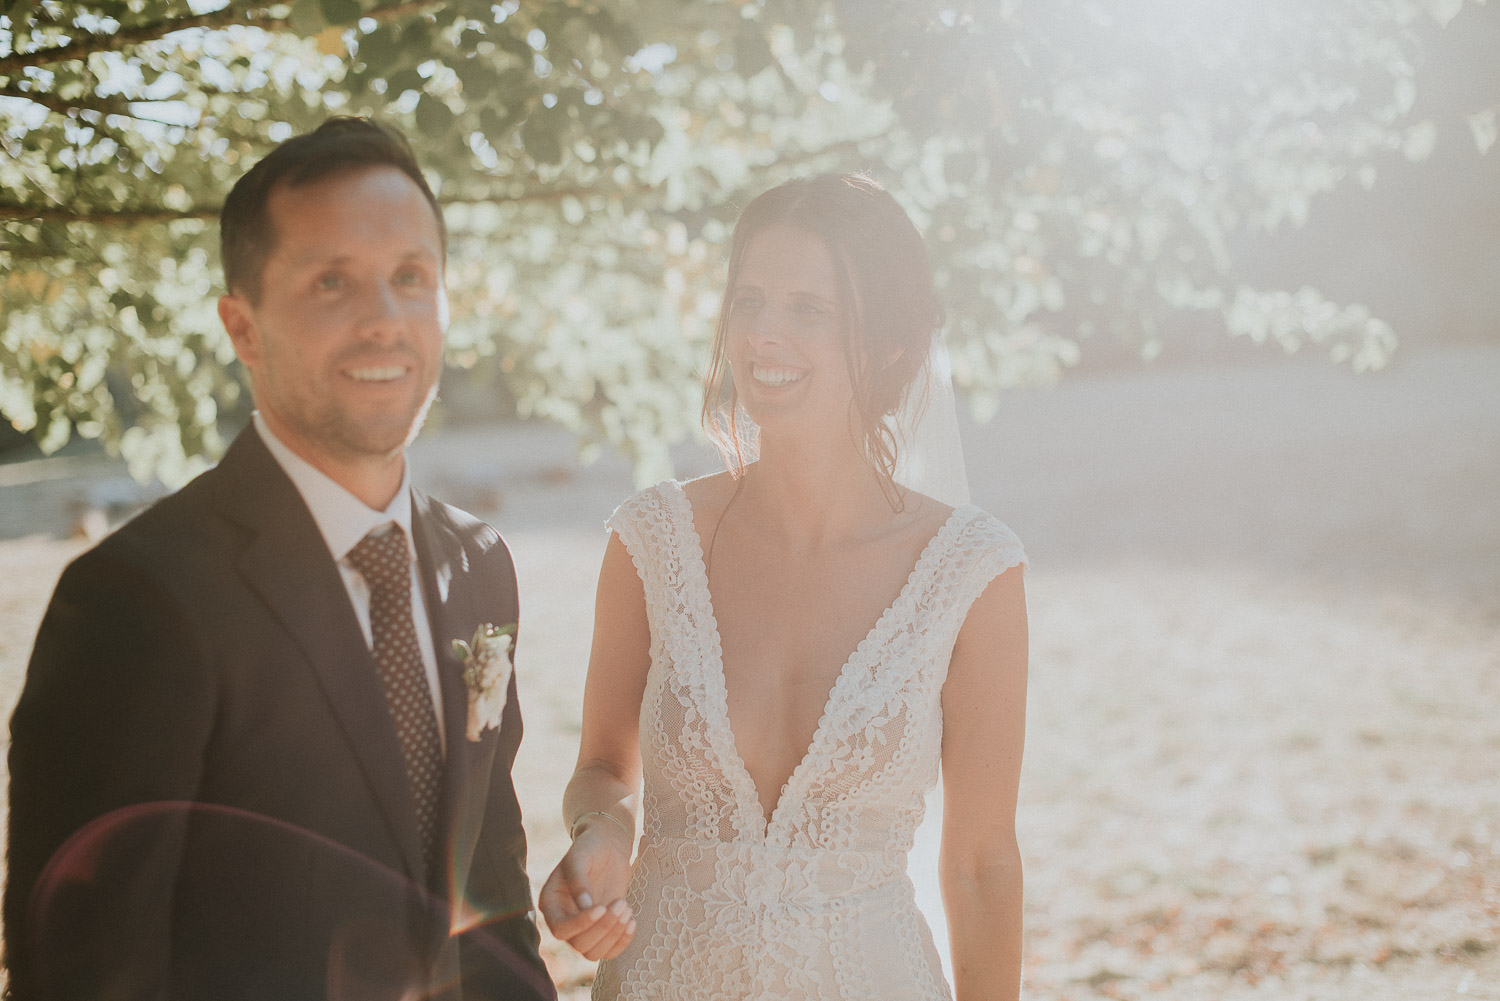 bergerac_wedding_katy_webb_photography_france_UK123